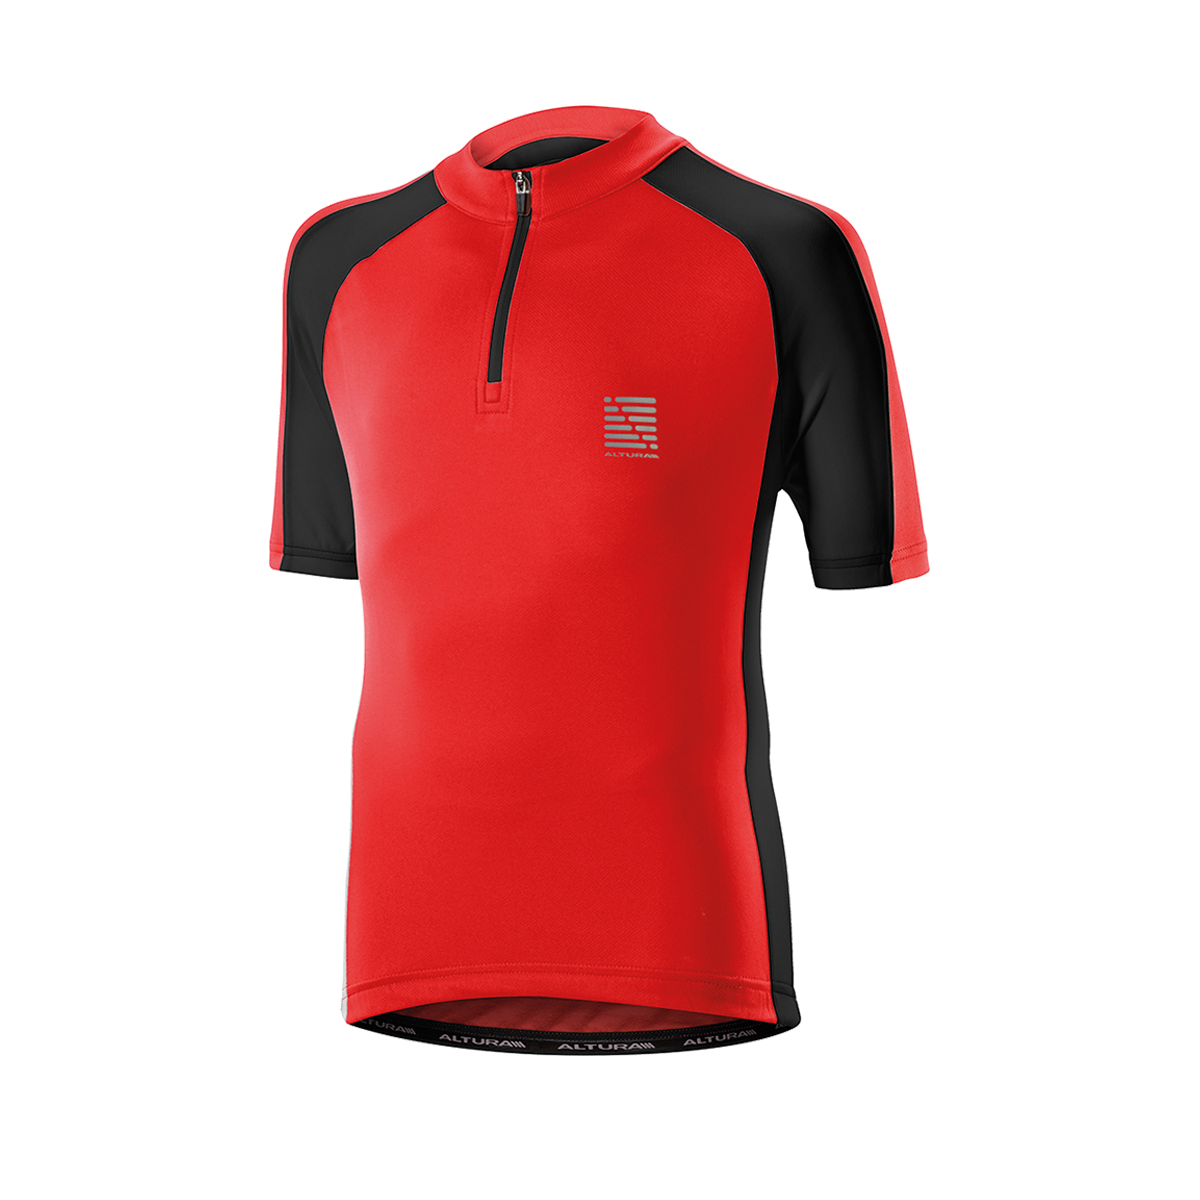 ALTURA CHILDREN'S SPRINT SHORT SLEEVE JERSEY 2016: RED/BLACK 10-12YRS